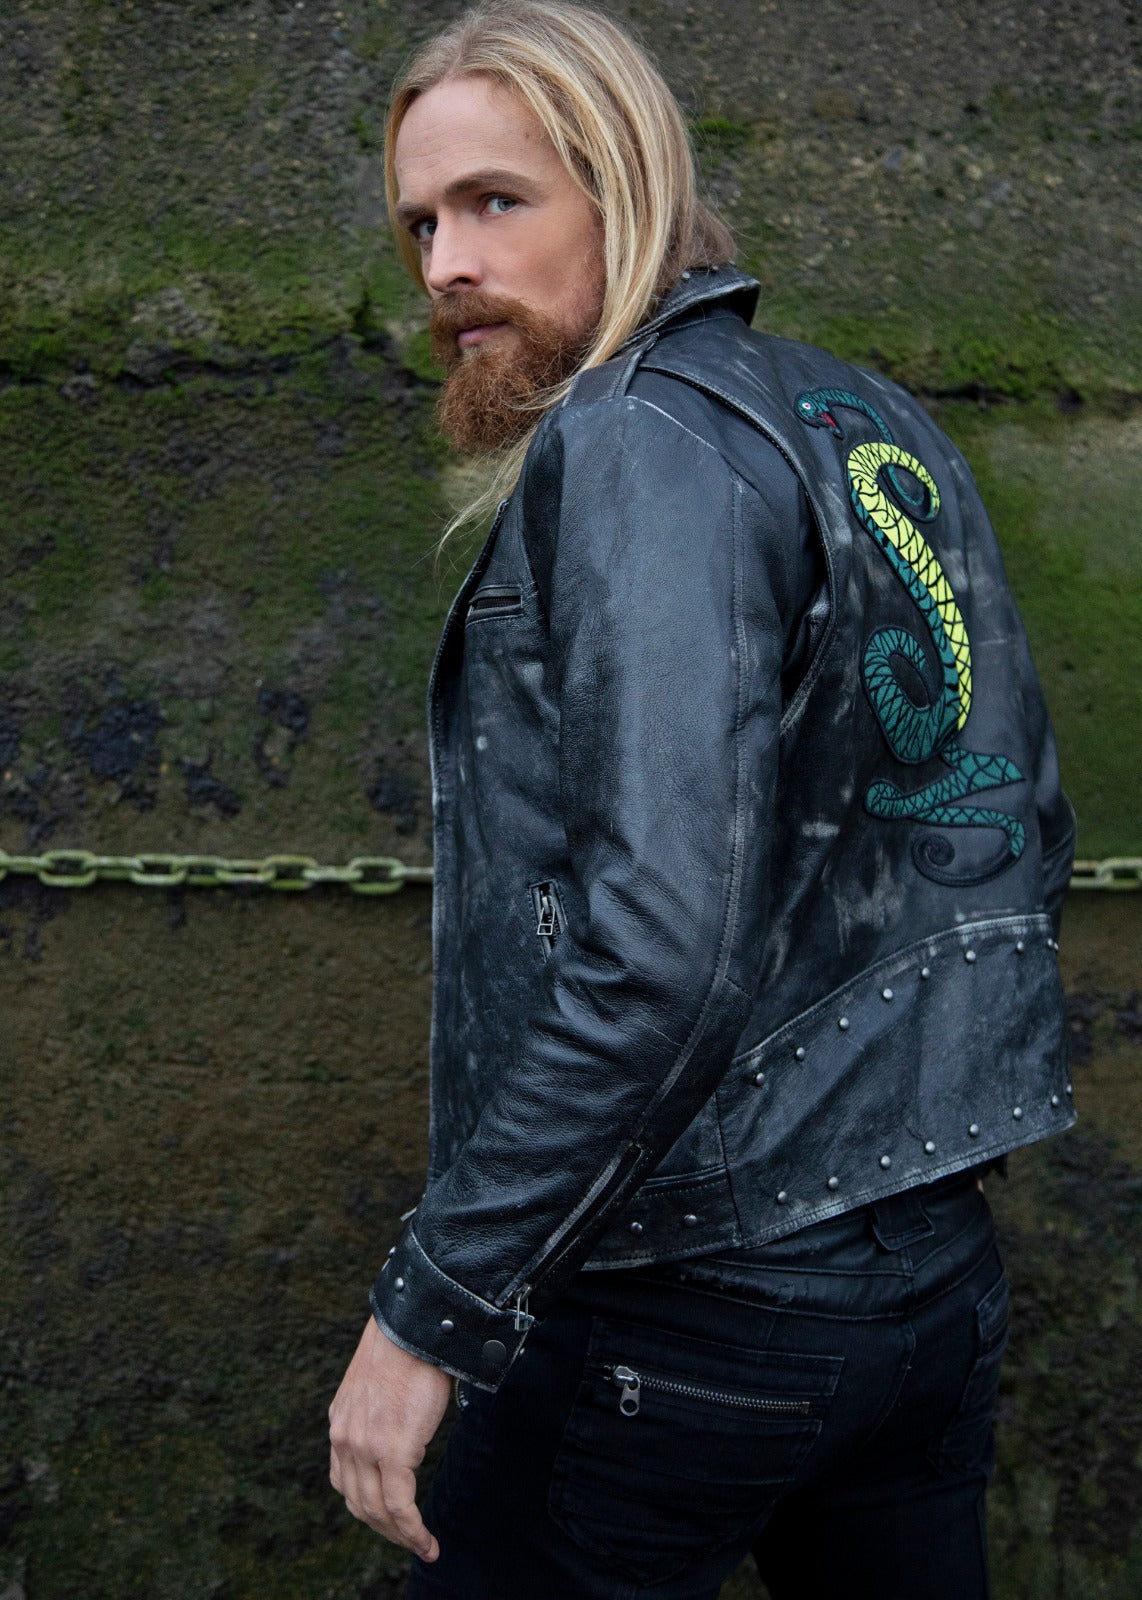 Buy Tunnel Snakes Rules Biker Leather Jacket Motorcycle